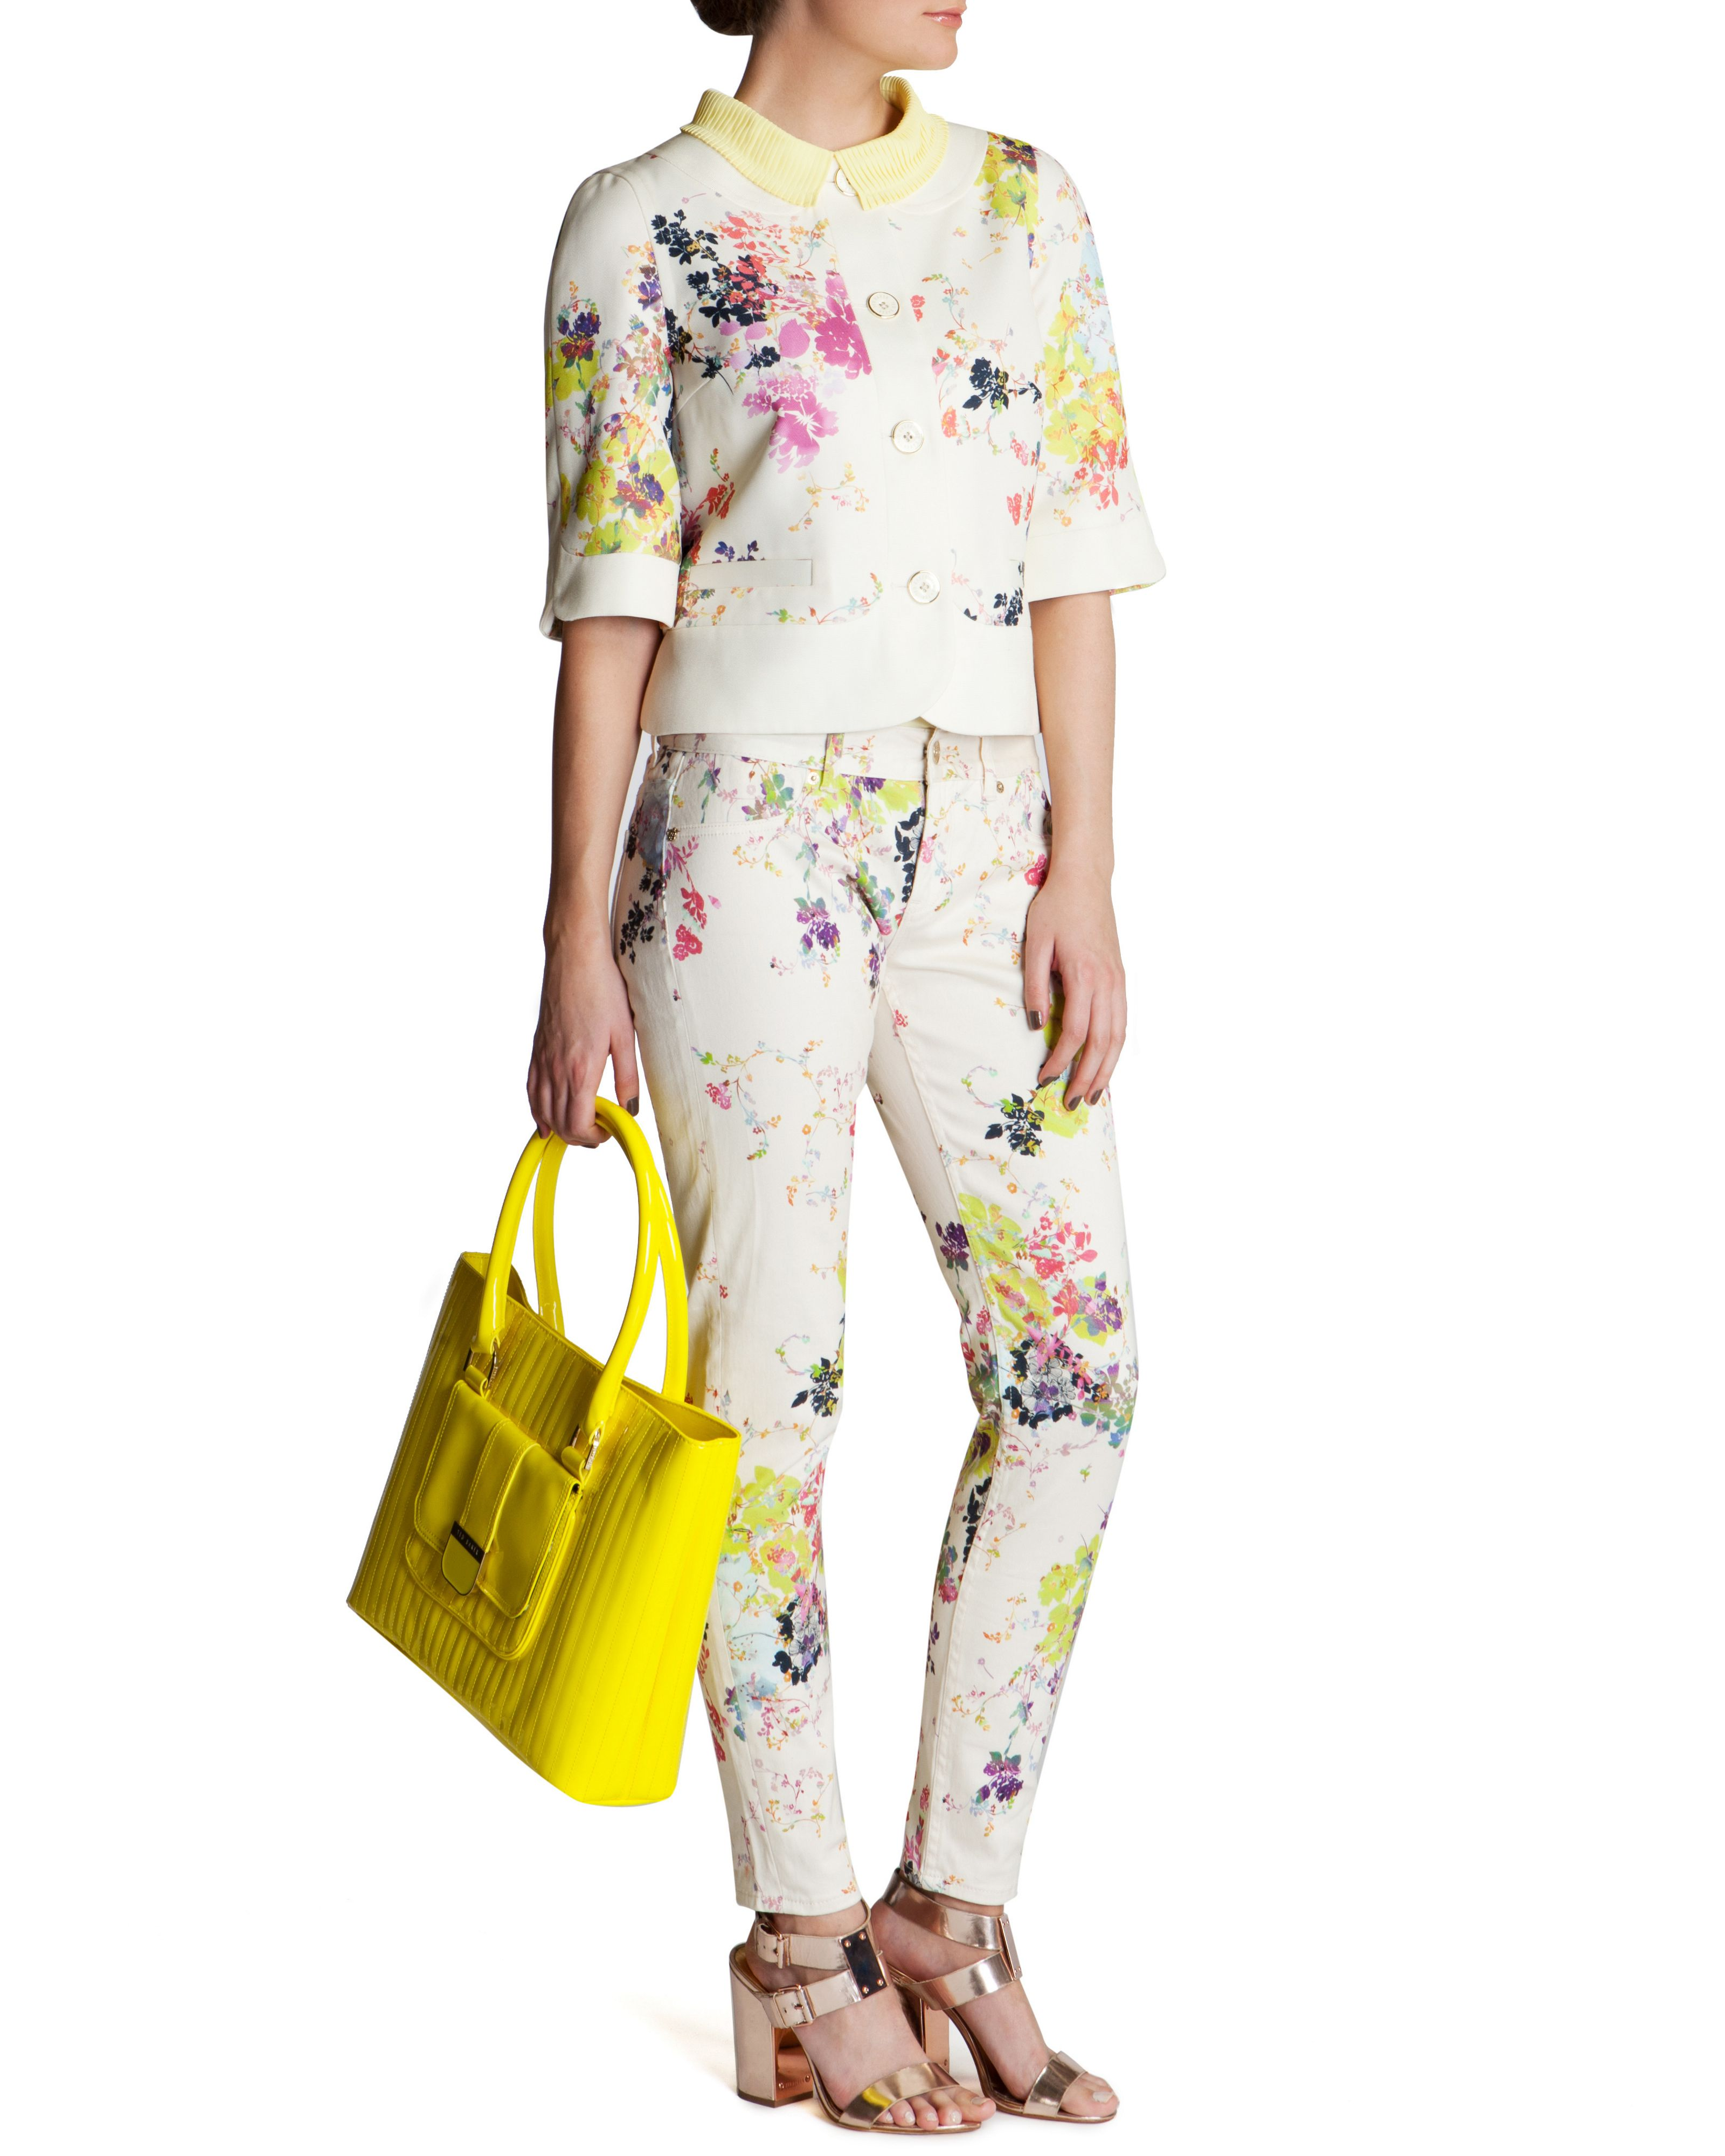 Eleano summer bllom printed jean